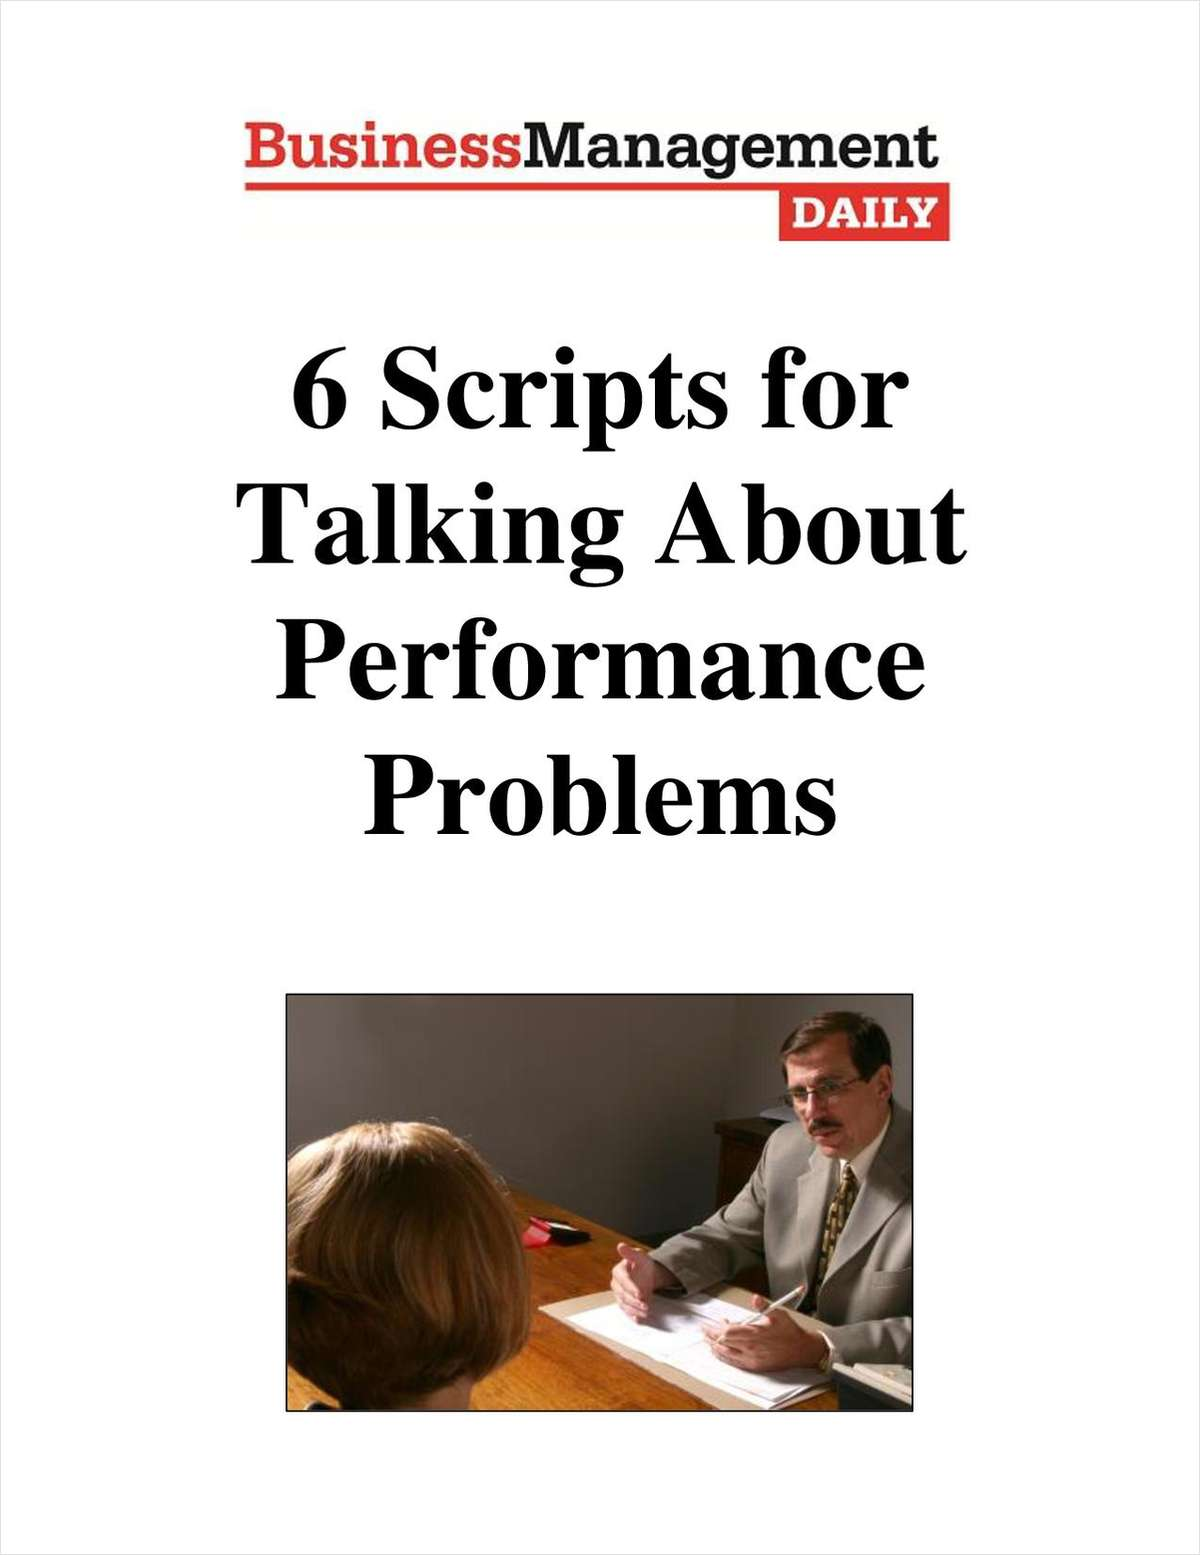 6 Scripts for Talking About Performance Problems